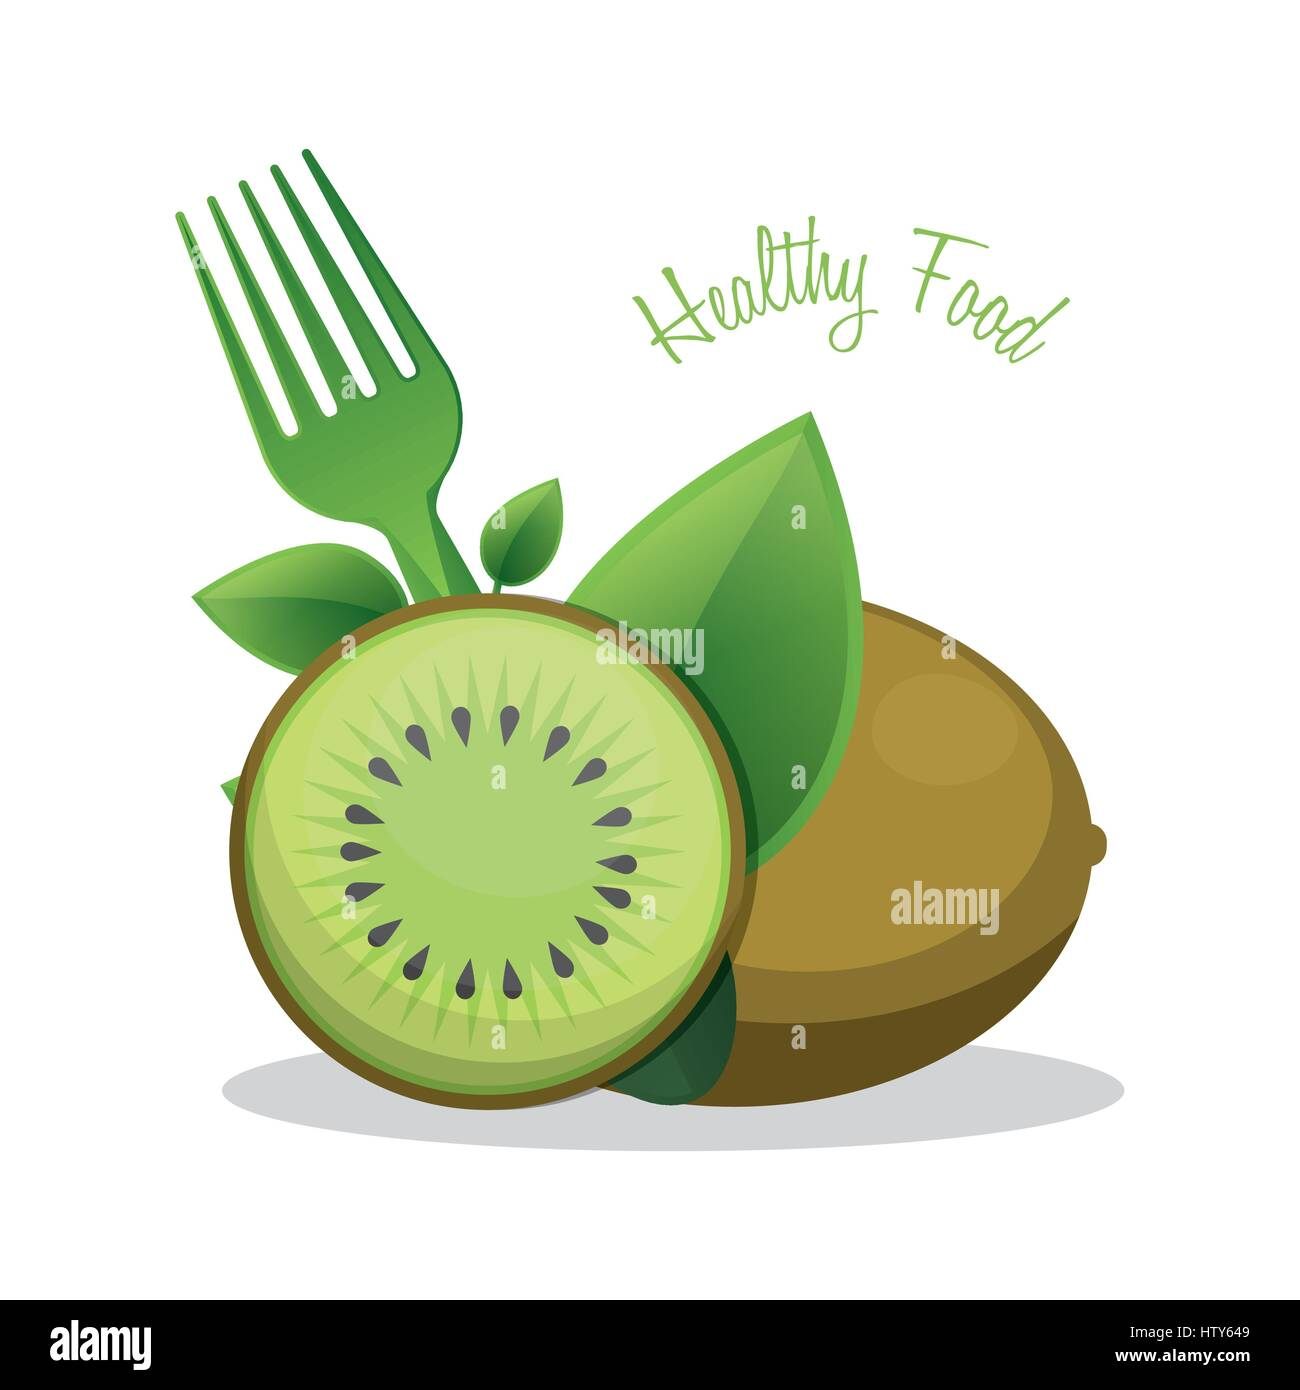 kiwi healthy food ingredient - Stock Image